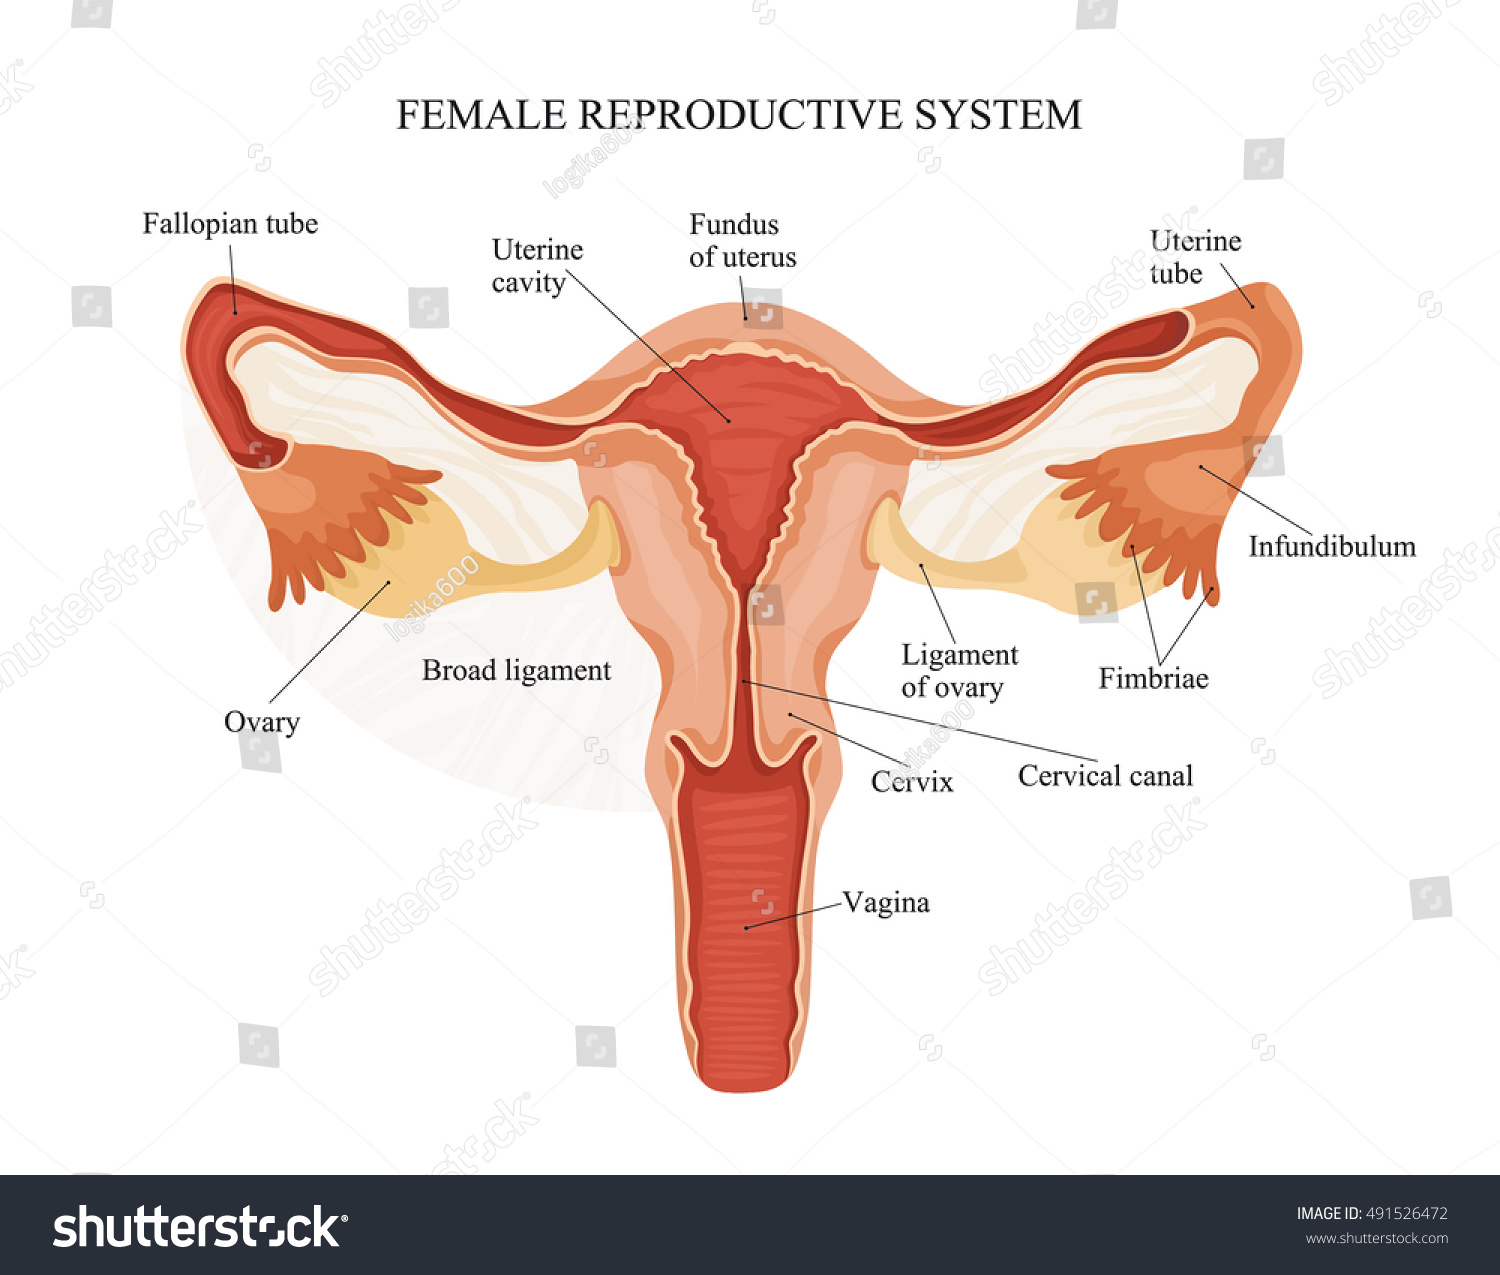 Illustration Female Reproductive System Human Anatomy Stock Vector